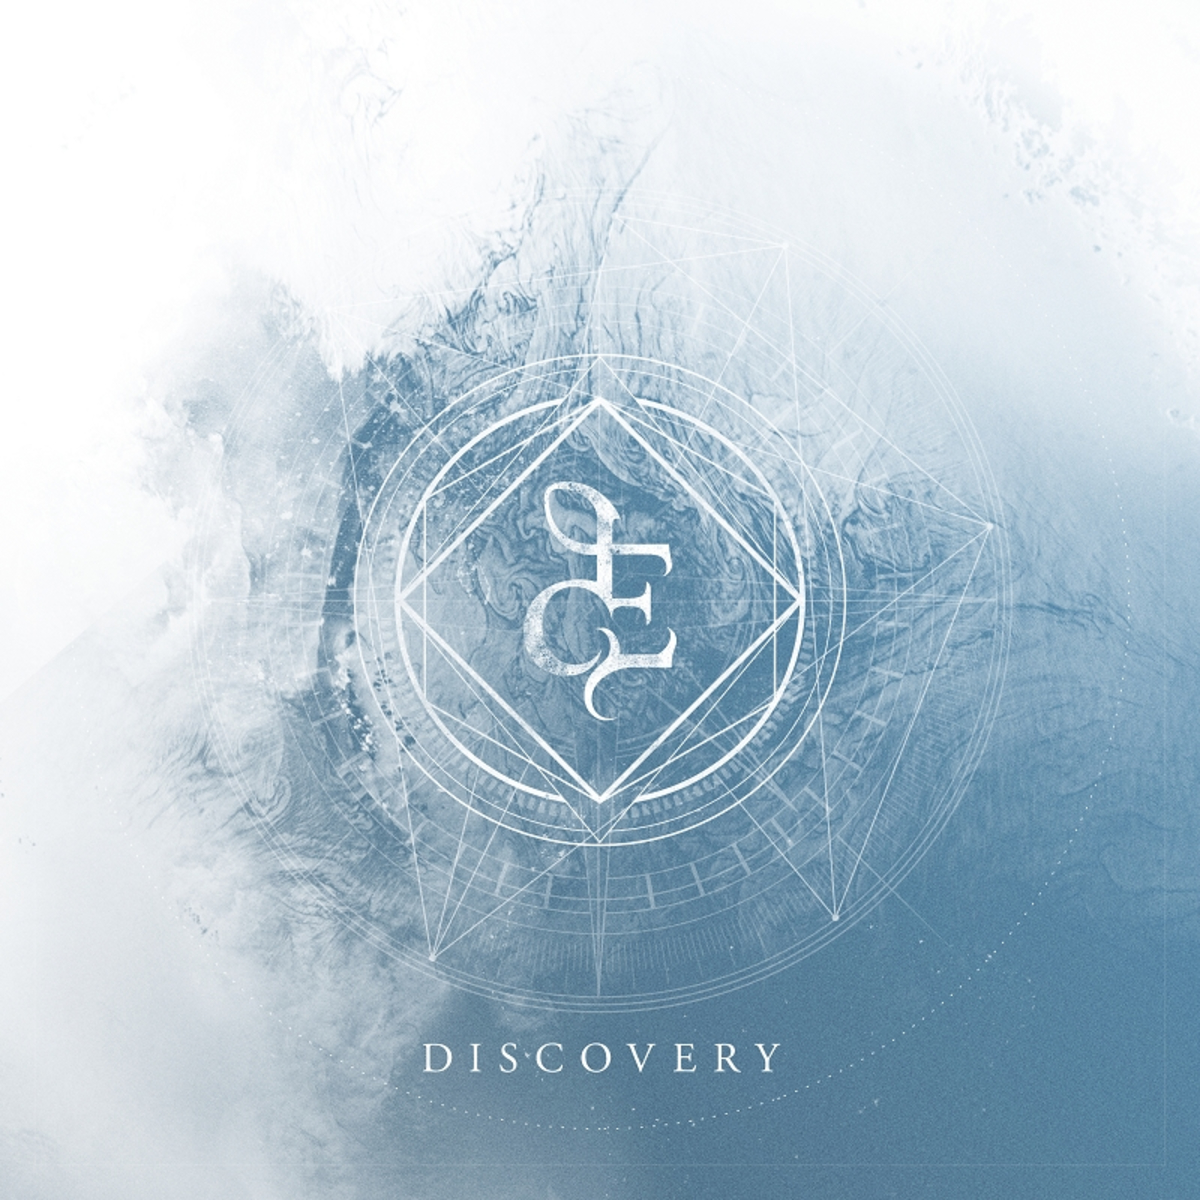 dEMOTIONAL - Discovery (2017)